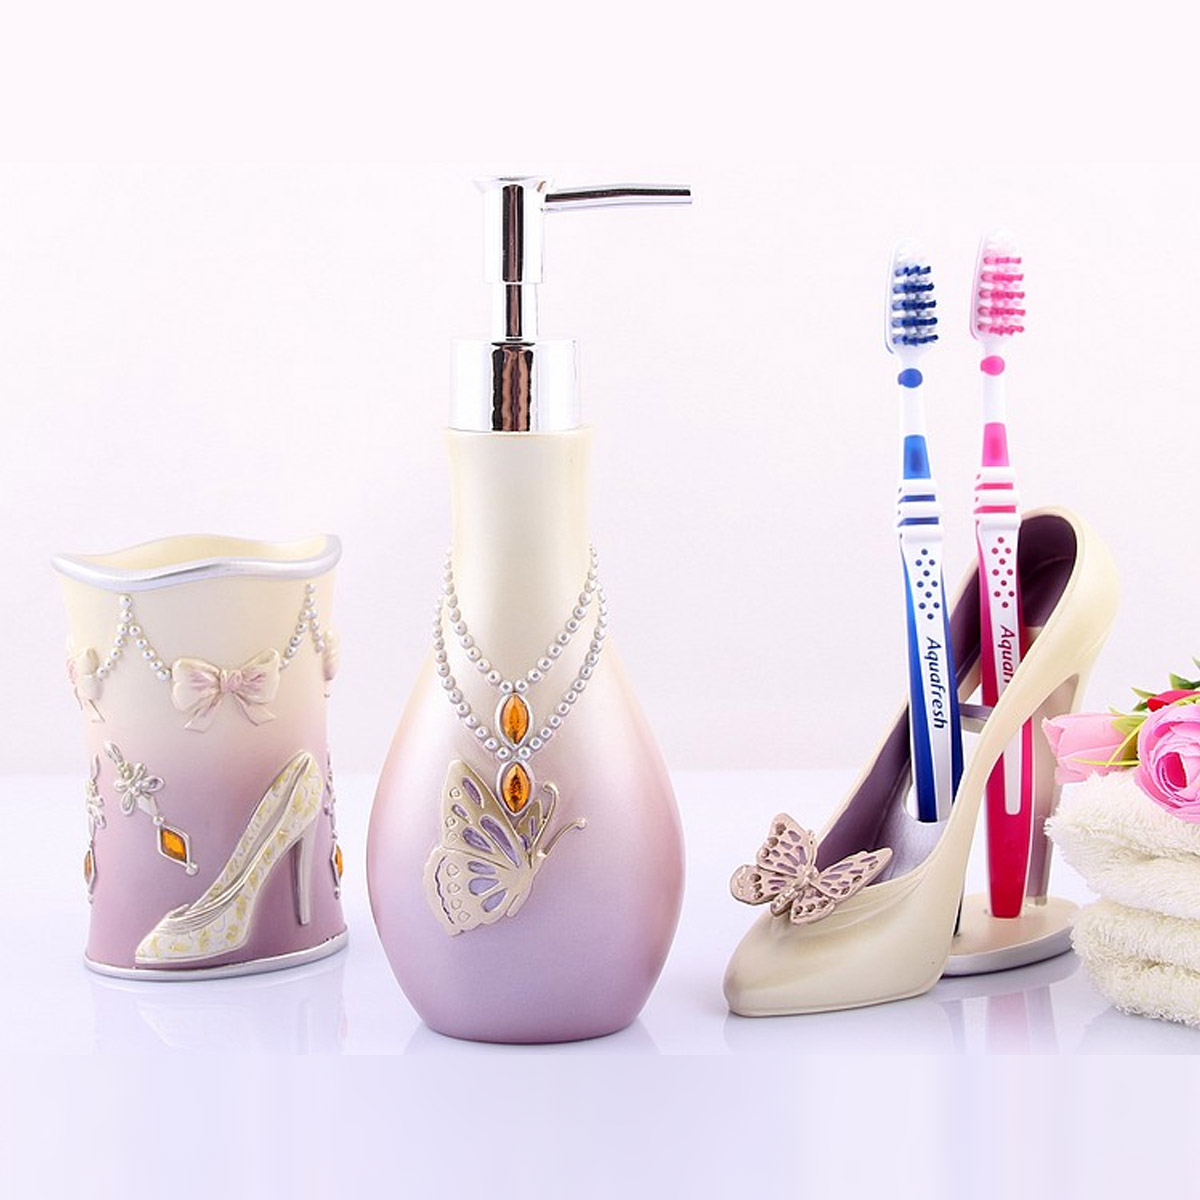 Beau High Heels 5pcs Bathroom Accessories Set Modern Toothbrush Holder Lady Bath  Sets Soap Holder Lotion Dispenser In Bathroom Accessories Sets From Home ...